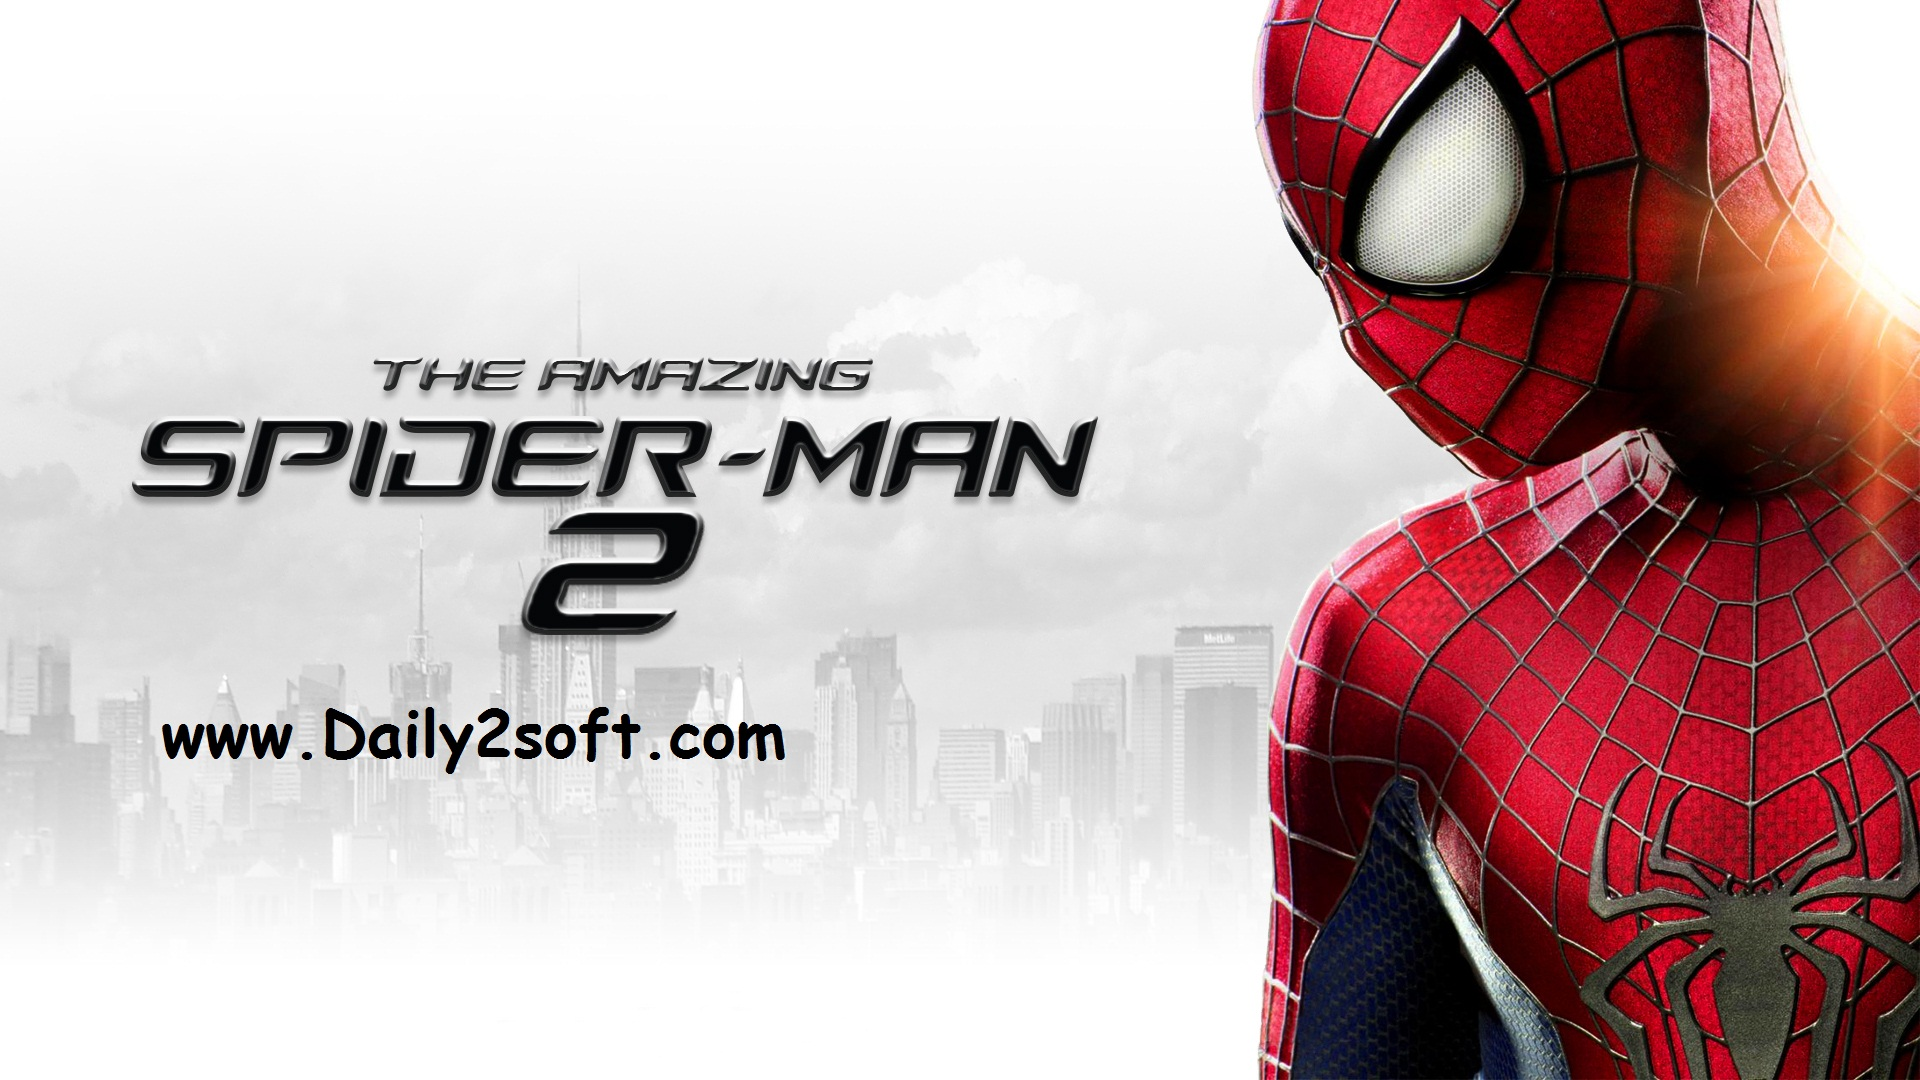 Spider Man 2 Game Cheat Codes Pc Game Download Full [Here]-Daily2soft